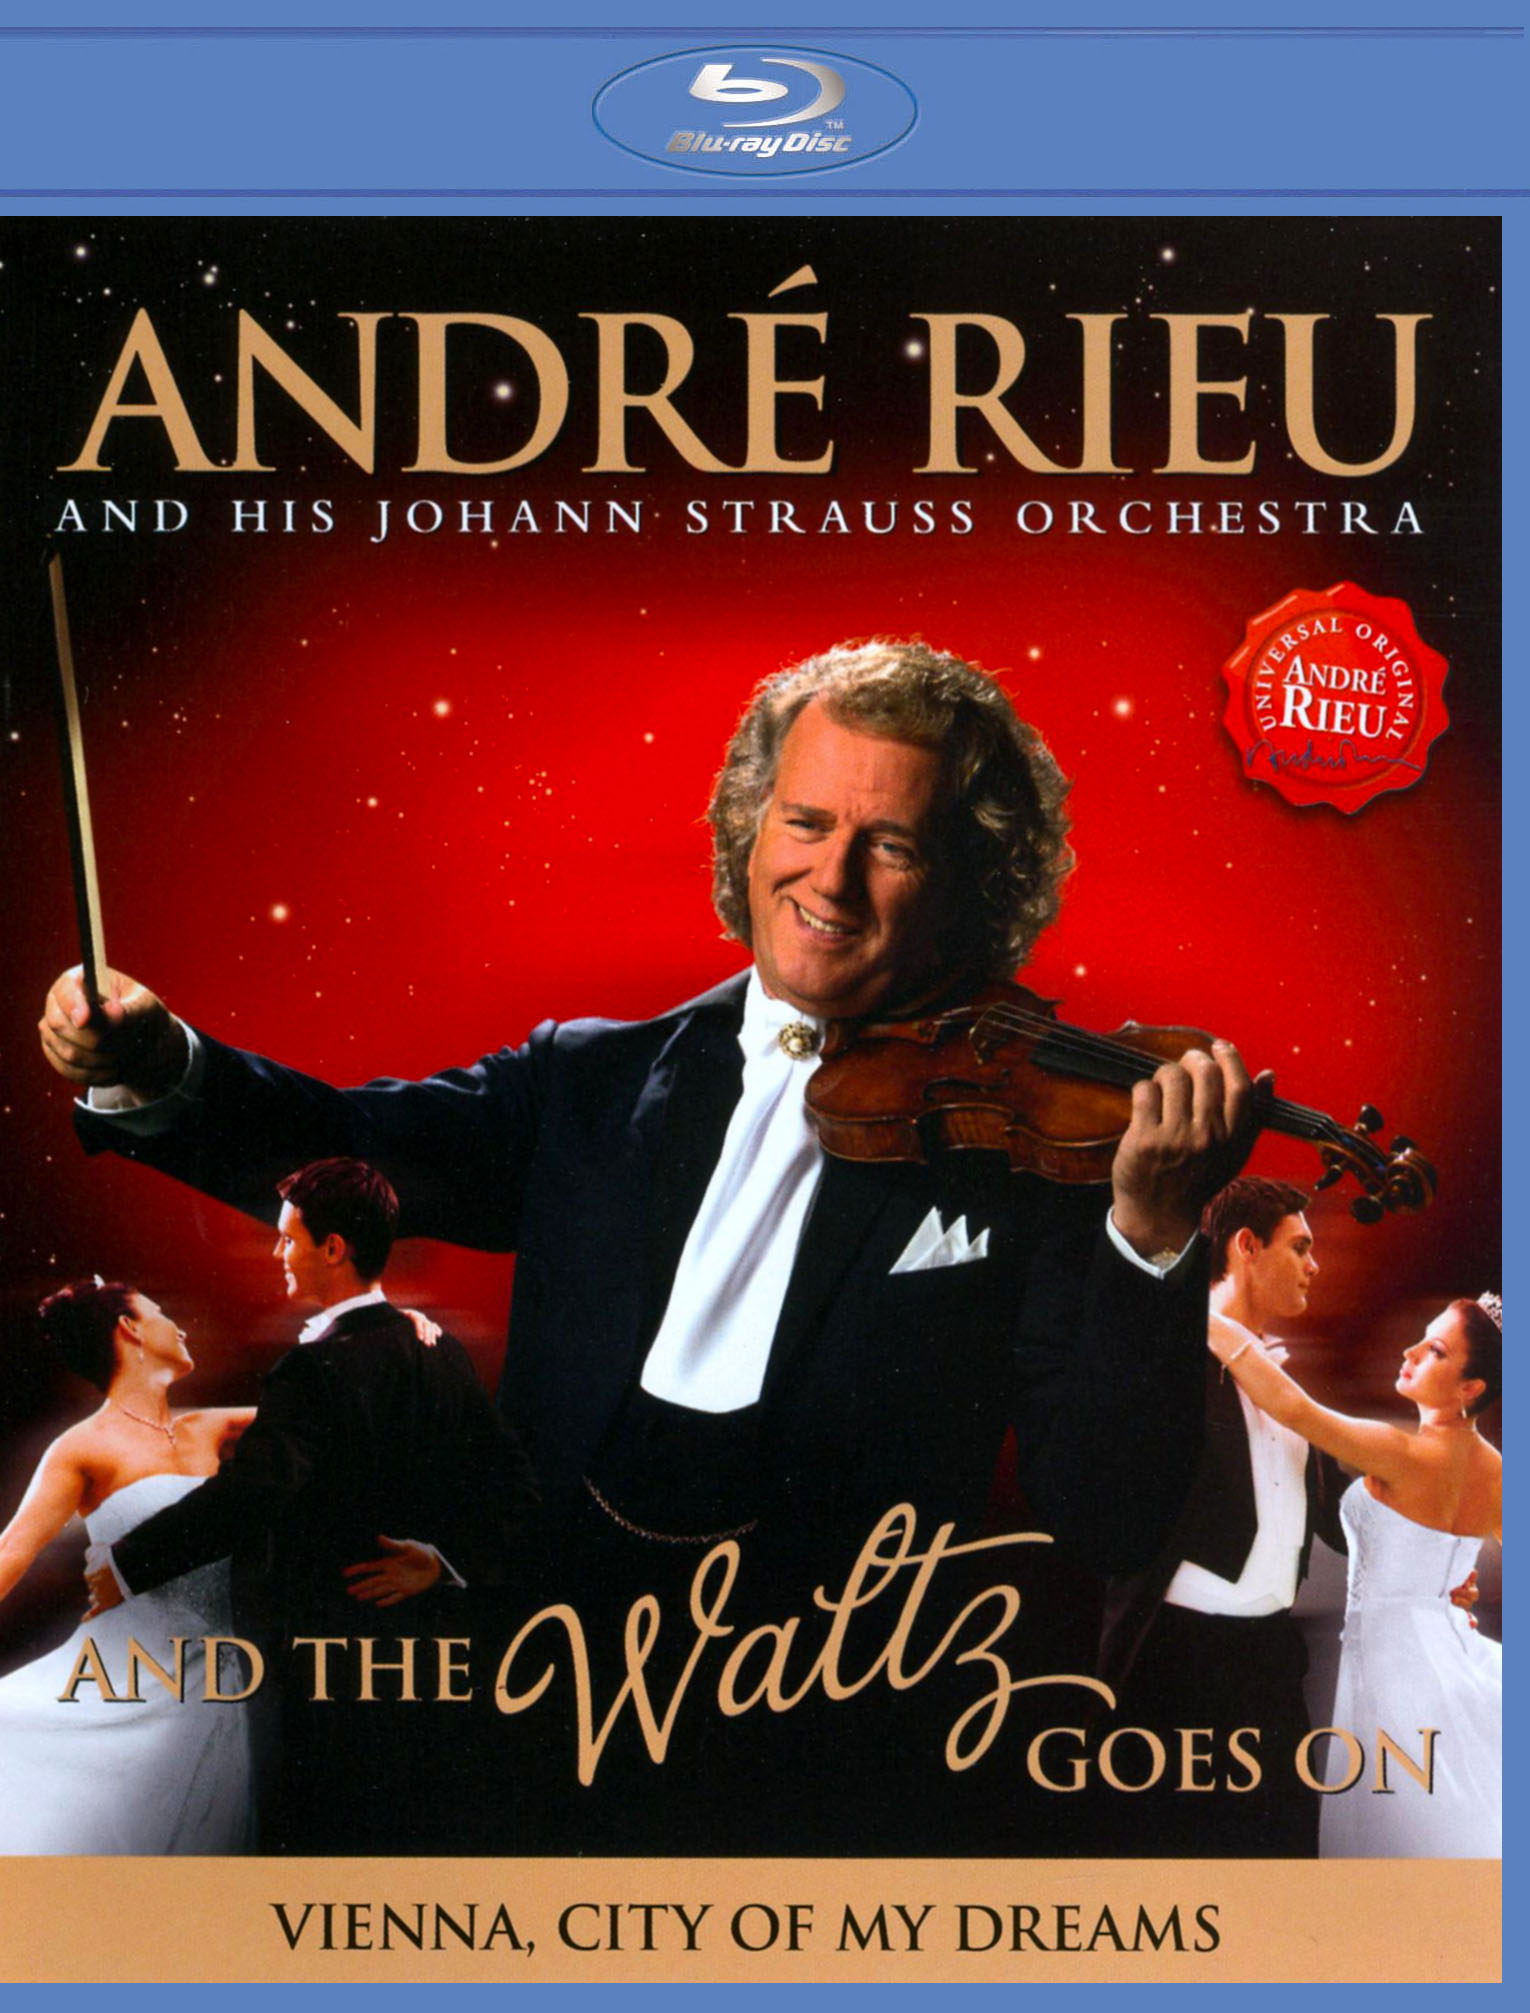 André Rieu and His Johann Strauss Orchestra: And the Waltz Goes On